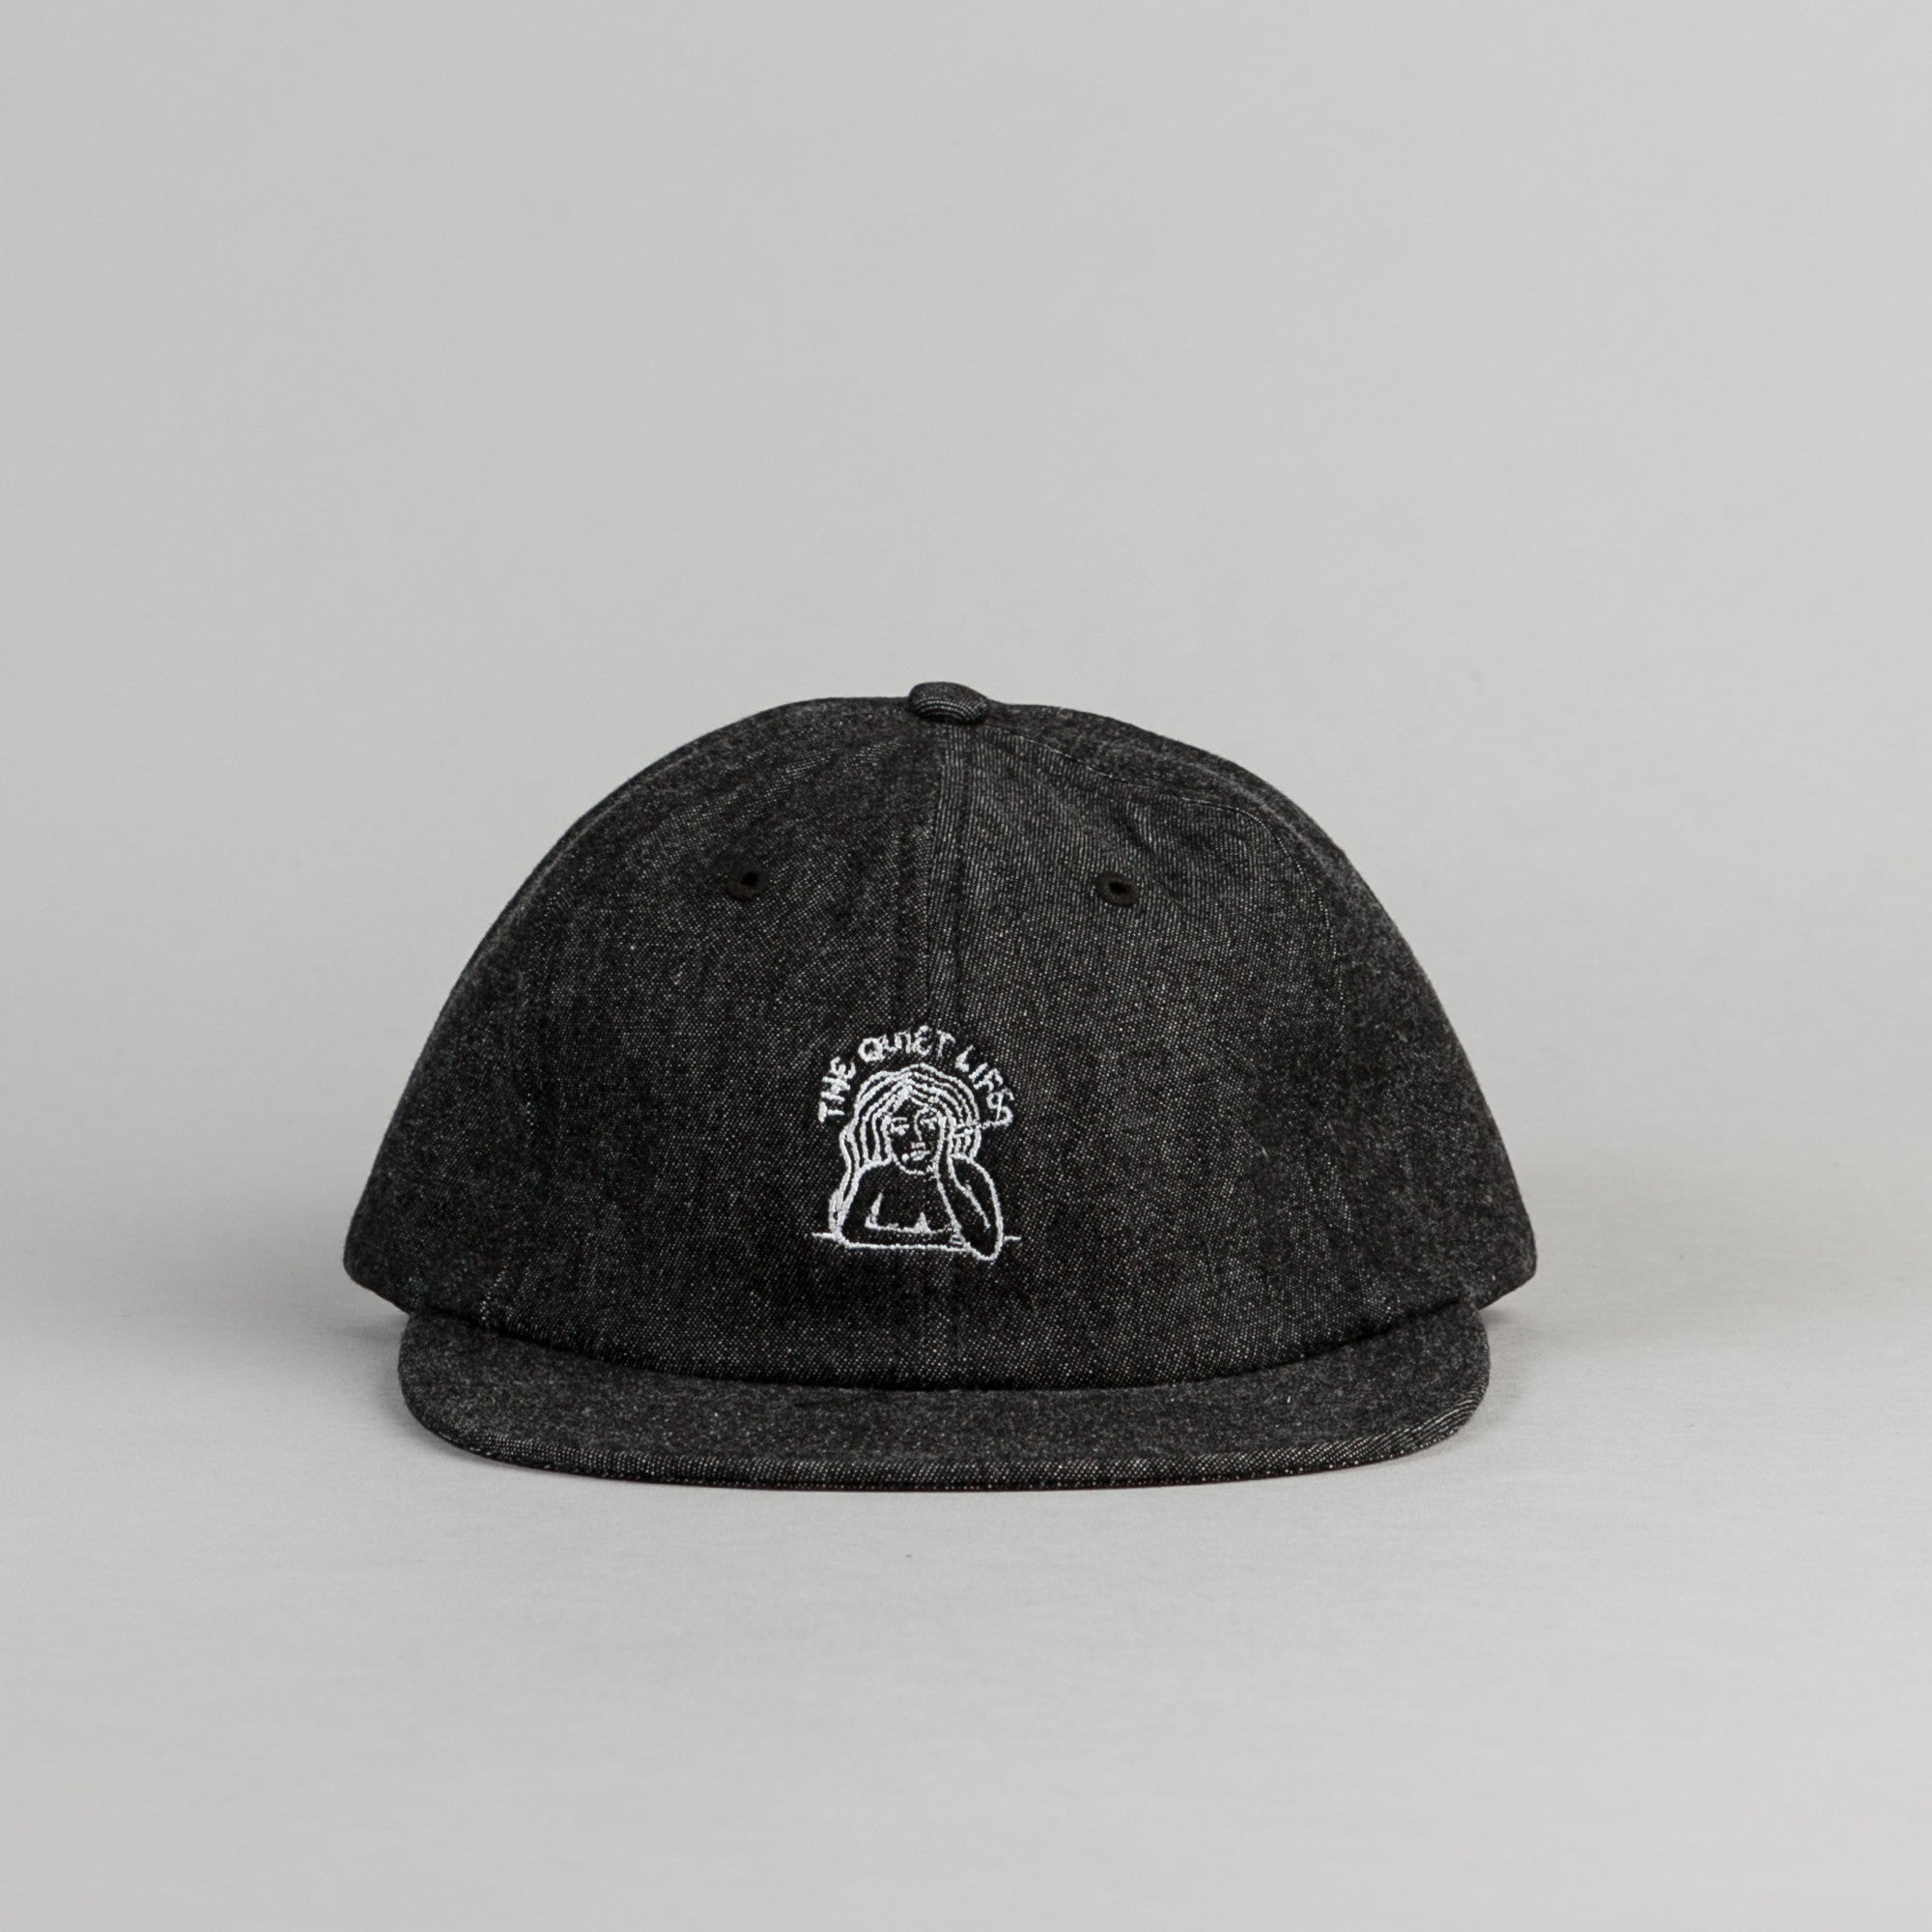 The Quiet Life Smoking Girl Polo Cap - Black Denim